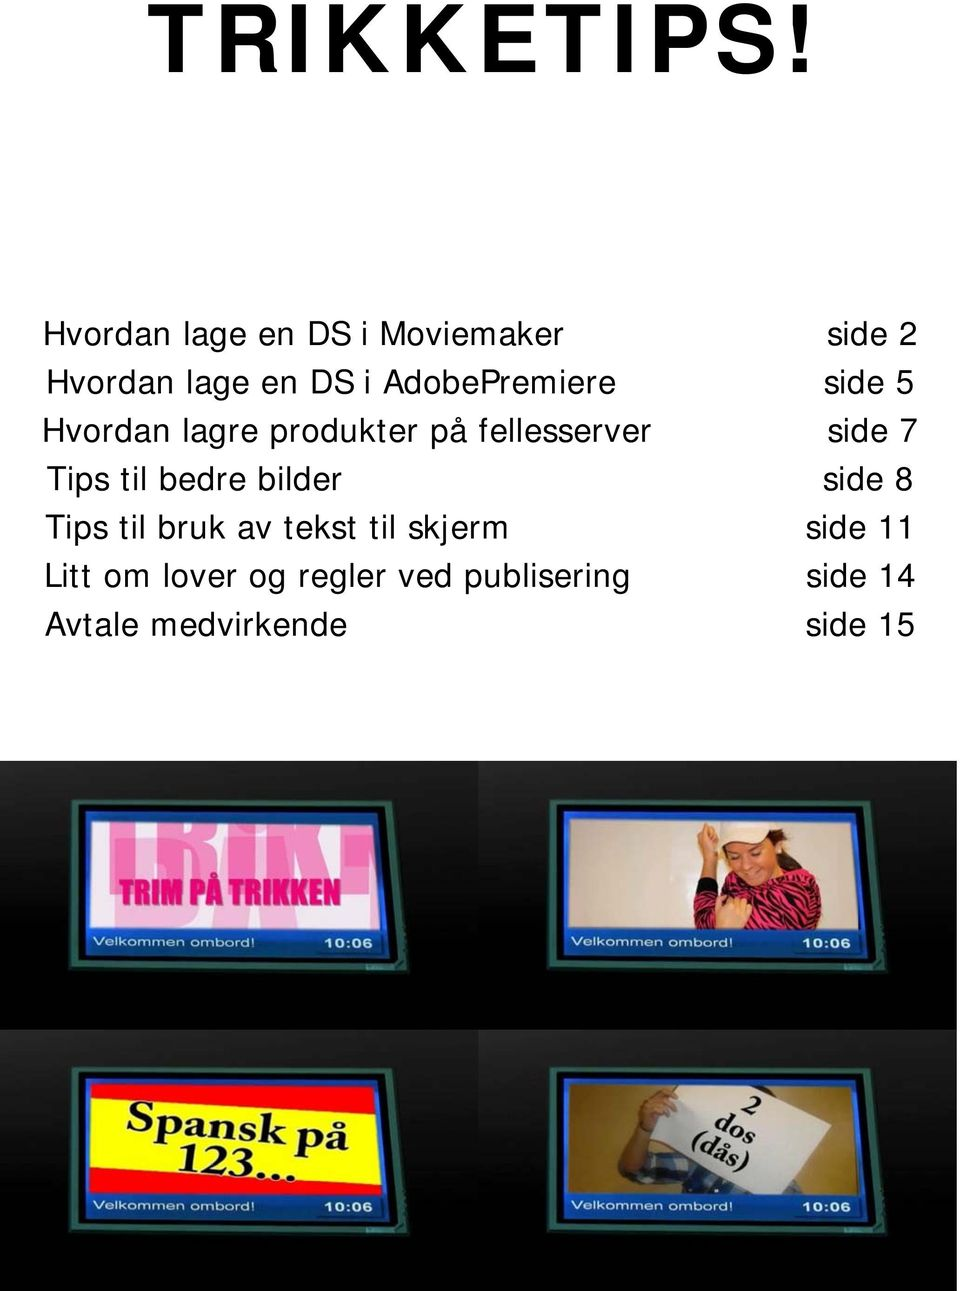 AdobePremiere side 5 Hvordan lagre produkter på fellesserver side 7